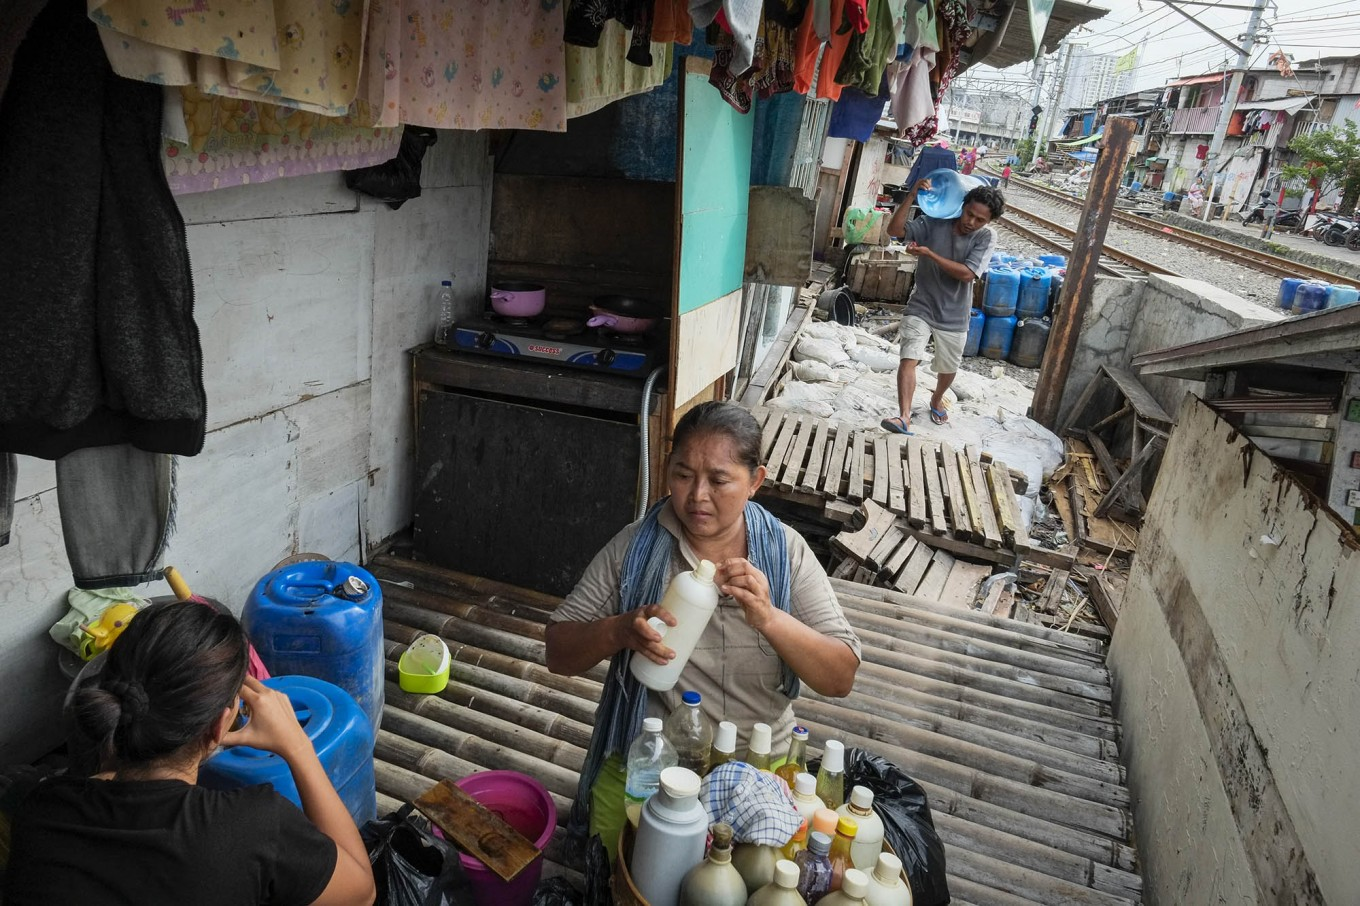 Manual work: Pio (back) carries a full water bottle while a jamu (traditional herbal drinks) seller serves her customer in a densely populated area of Kampung Muka. JP/ Jerry Adiguna